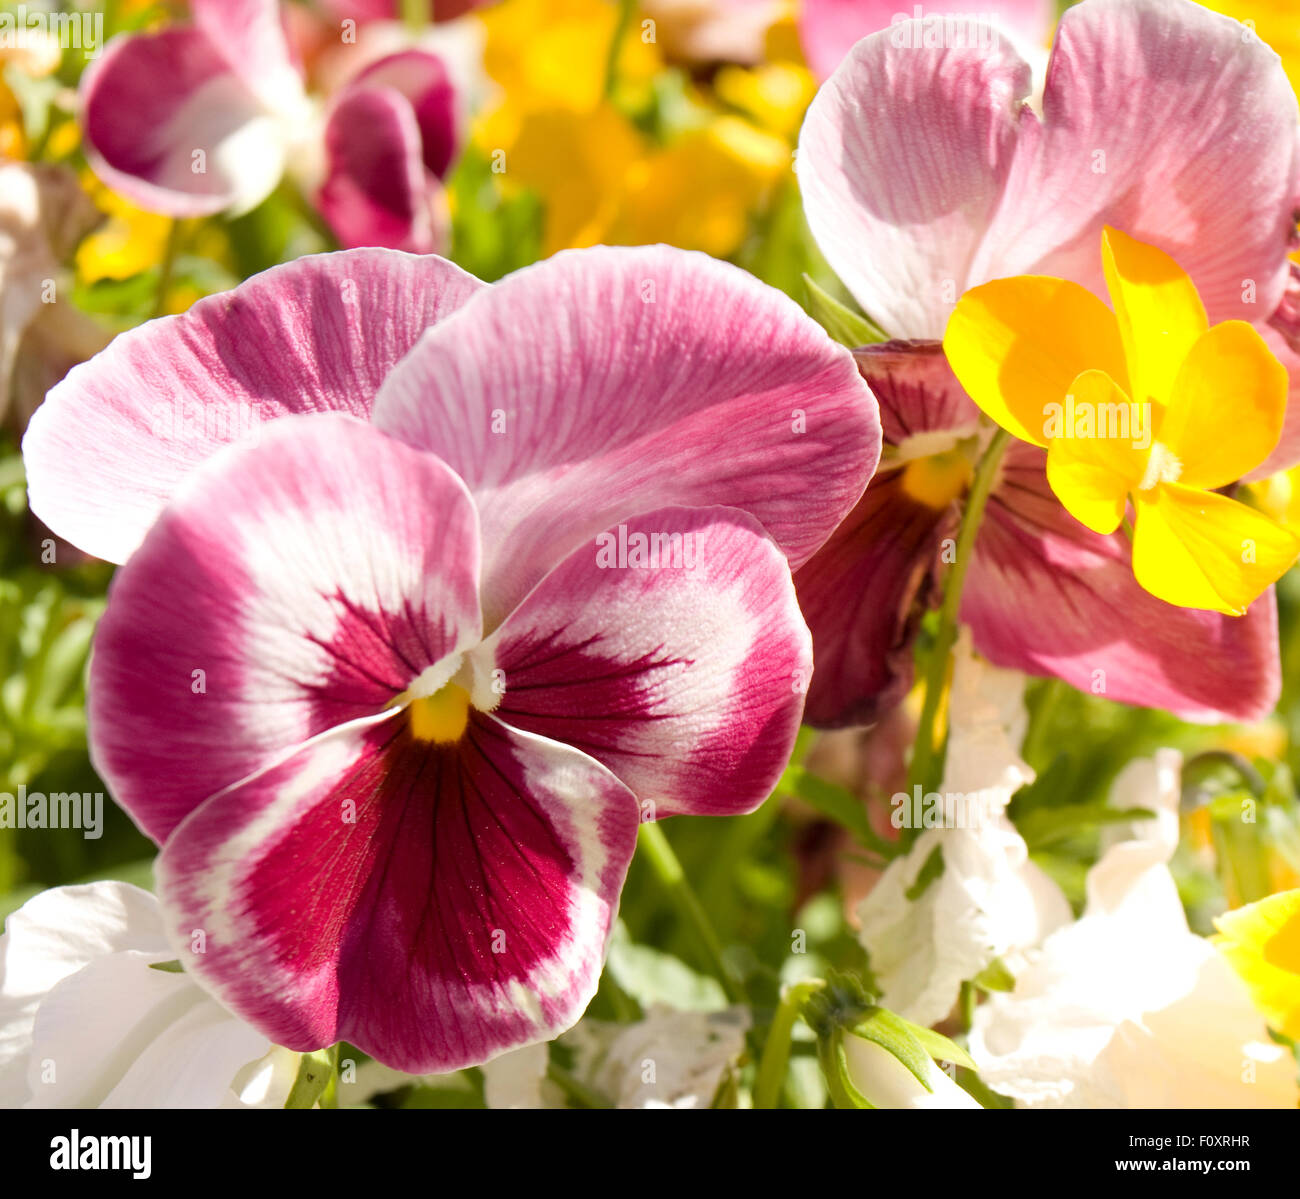 Pink Pansy Viola Tricolor With Other Flowers On Flower Bed Stock